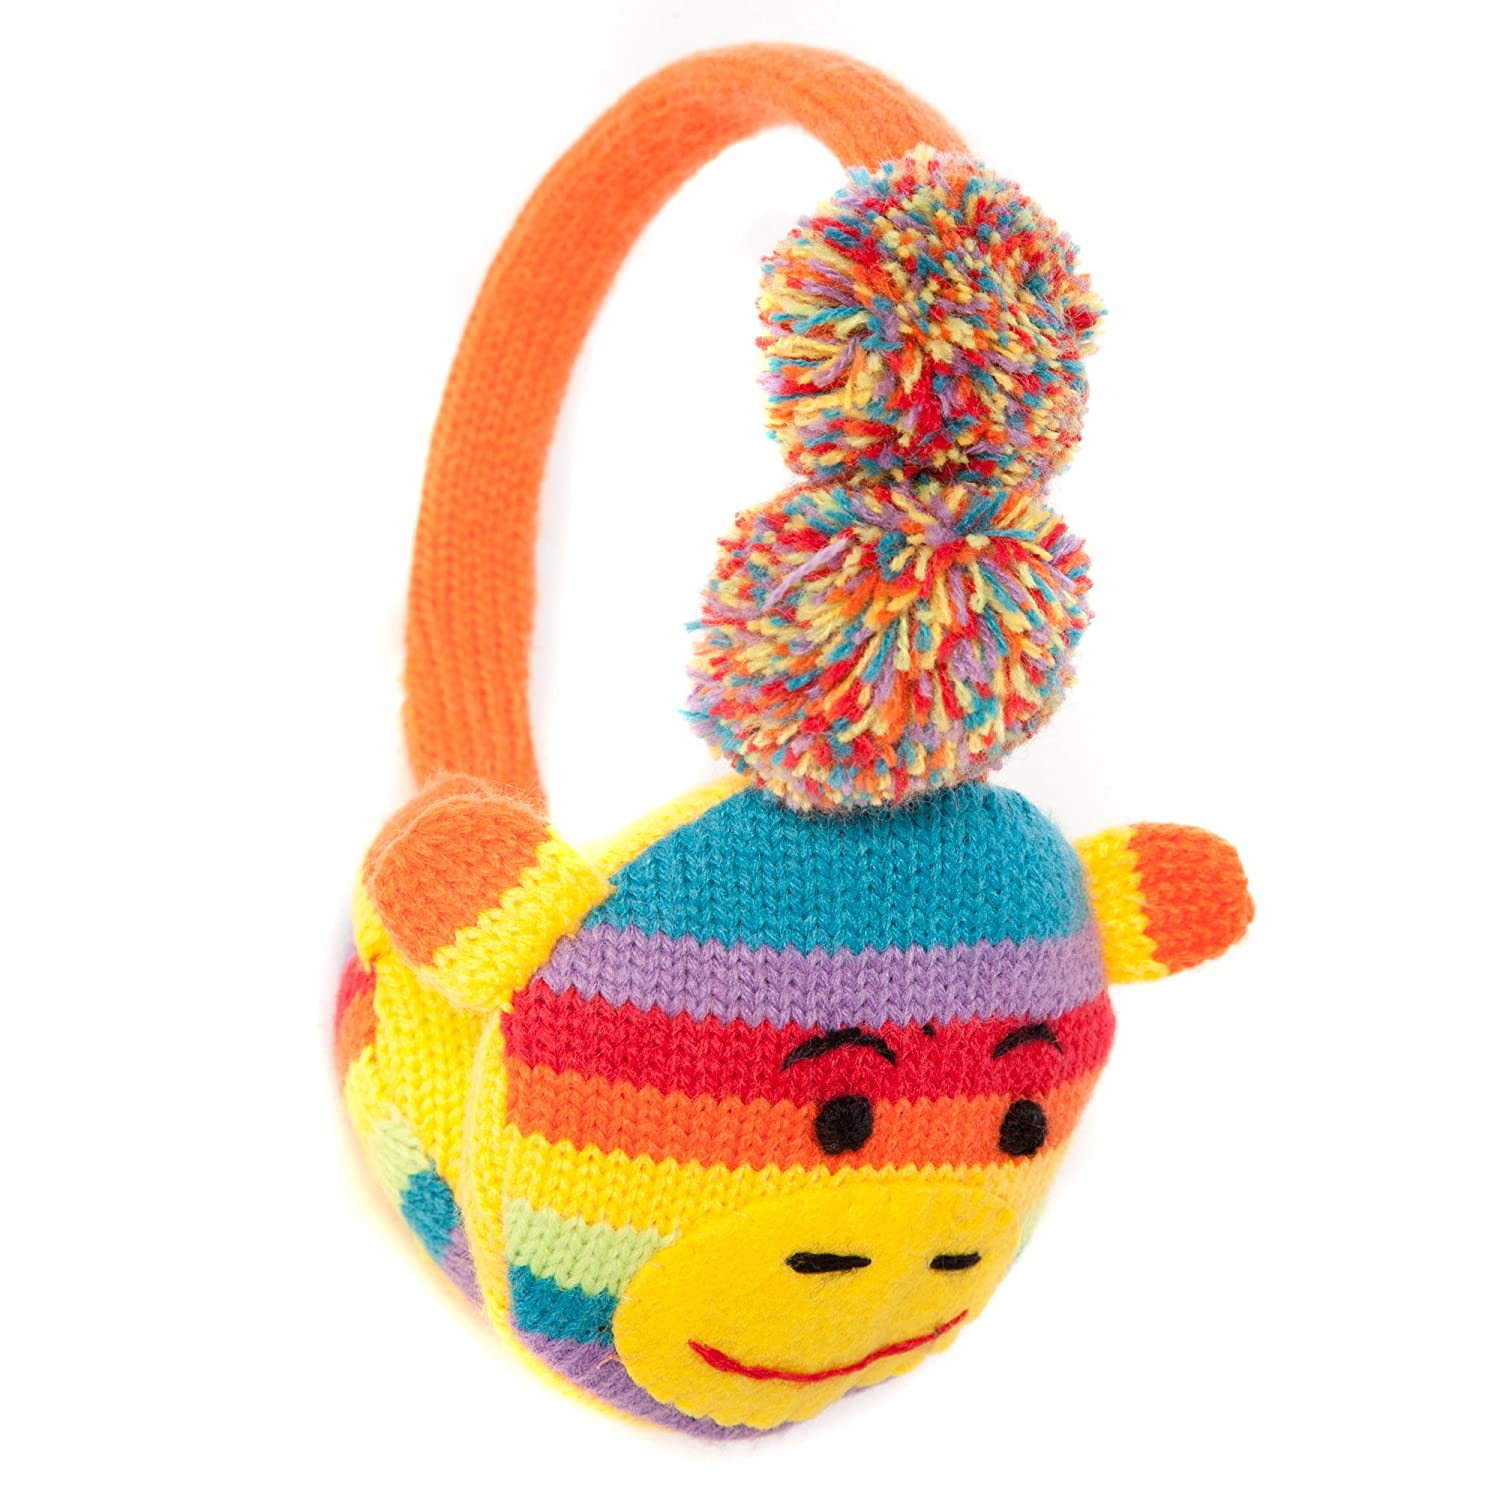 Cute Multi-Coloured Rainbow Monkey Style Winter Thermal Fashion Earmuffs with pompoms - Onesize fits most